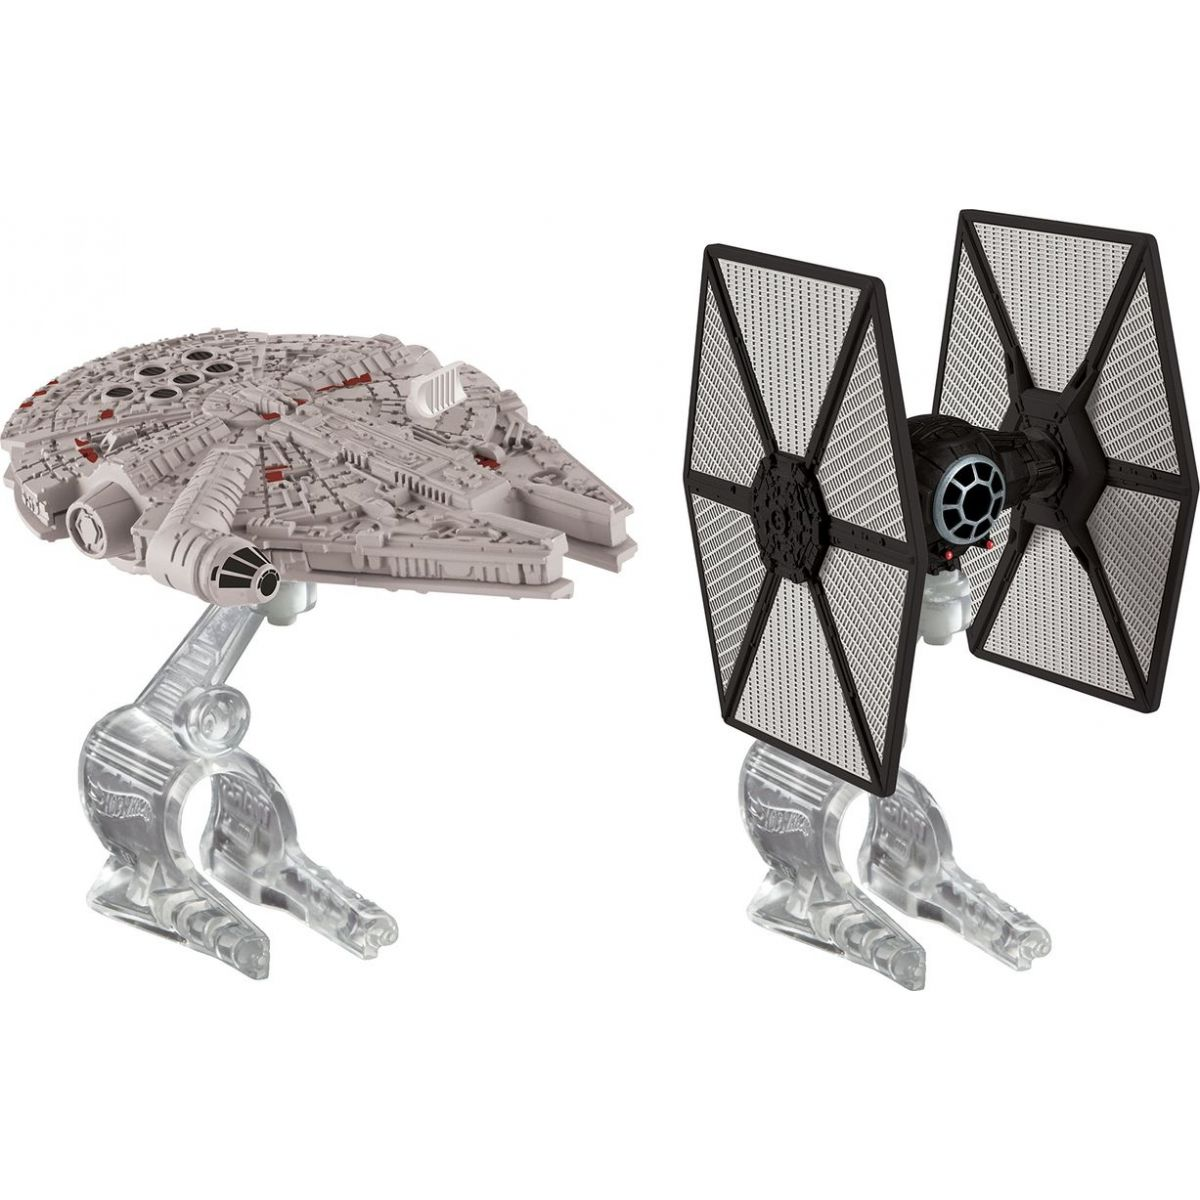 Hot Wheels Star Wars 2ks hvězdná loď - Tie Fighter vs Millennium Falcon